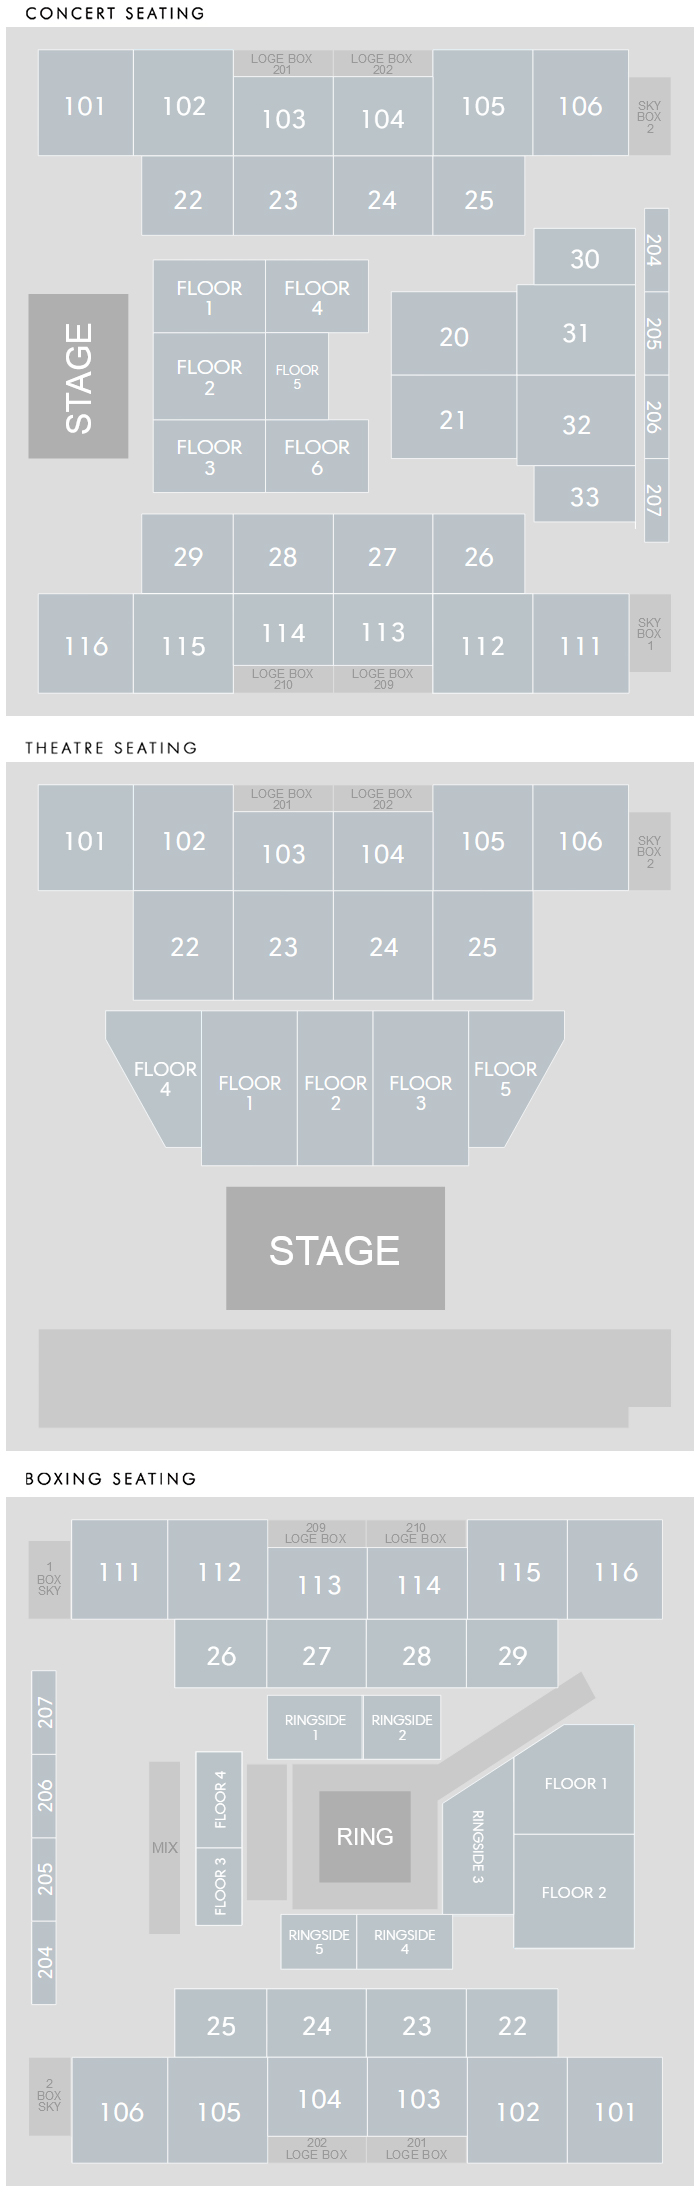 Event Center Seating Chart